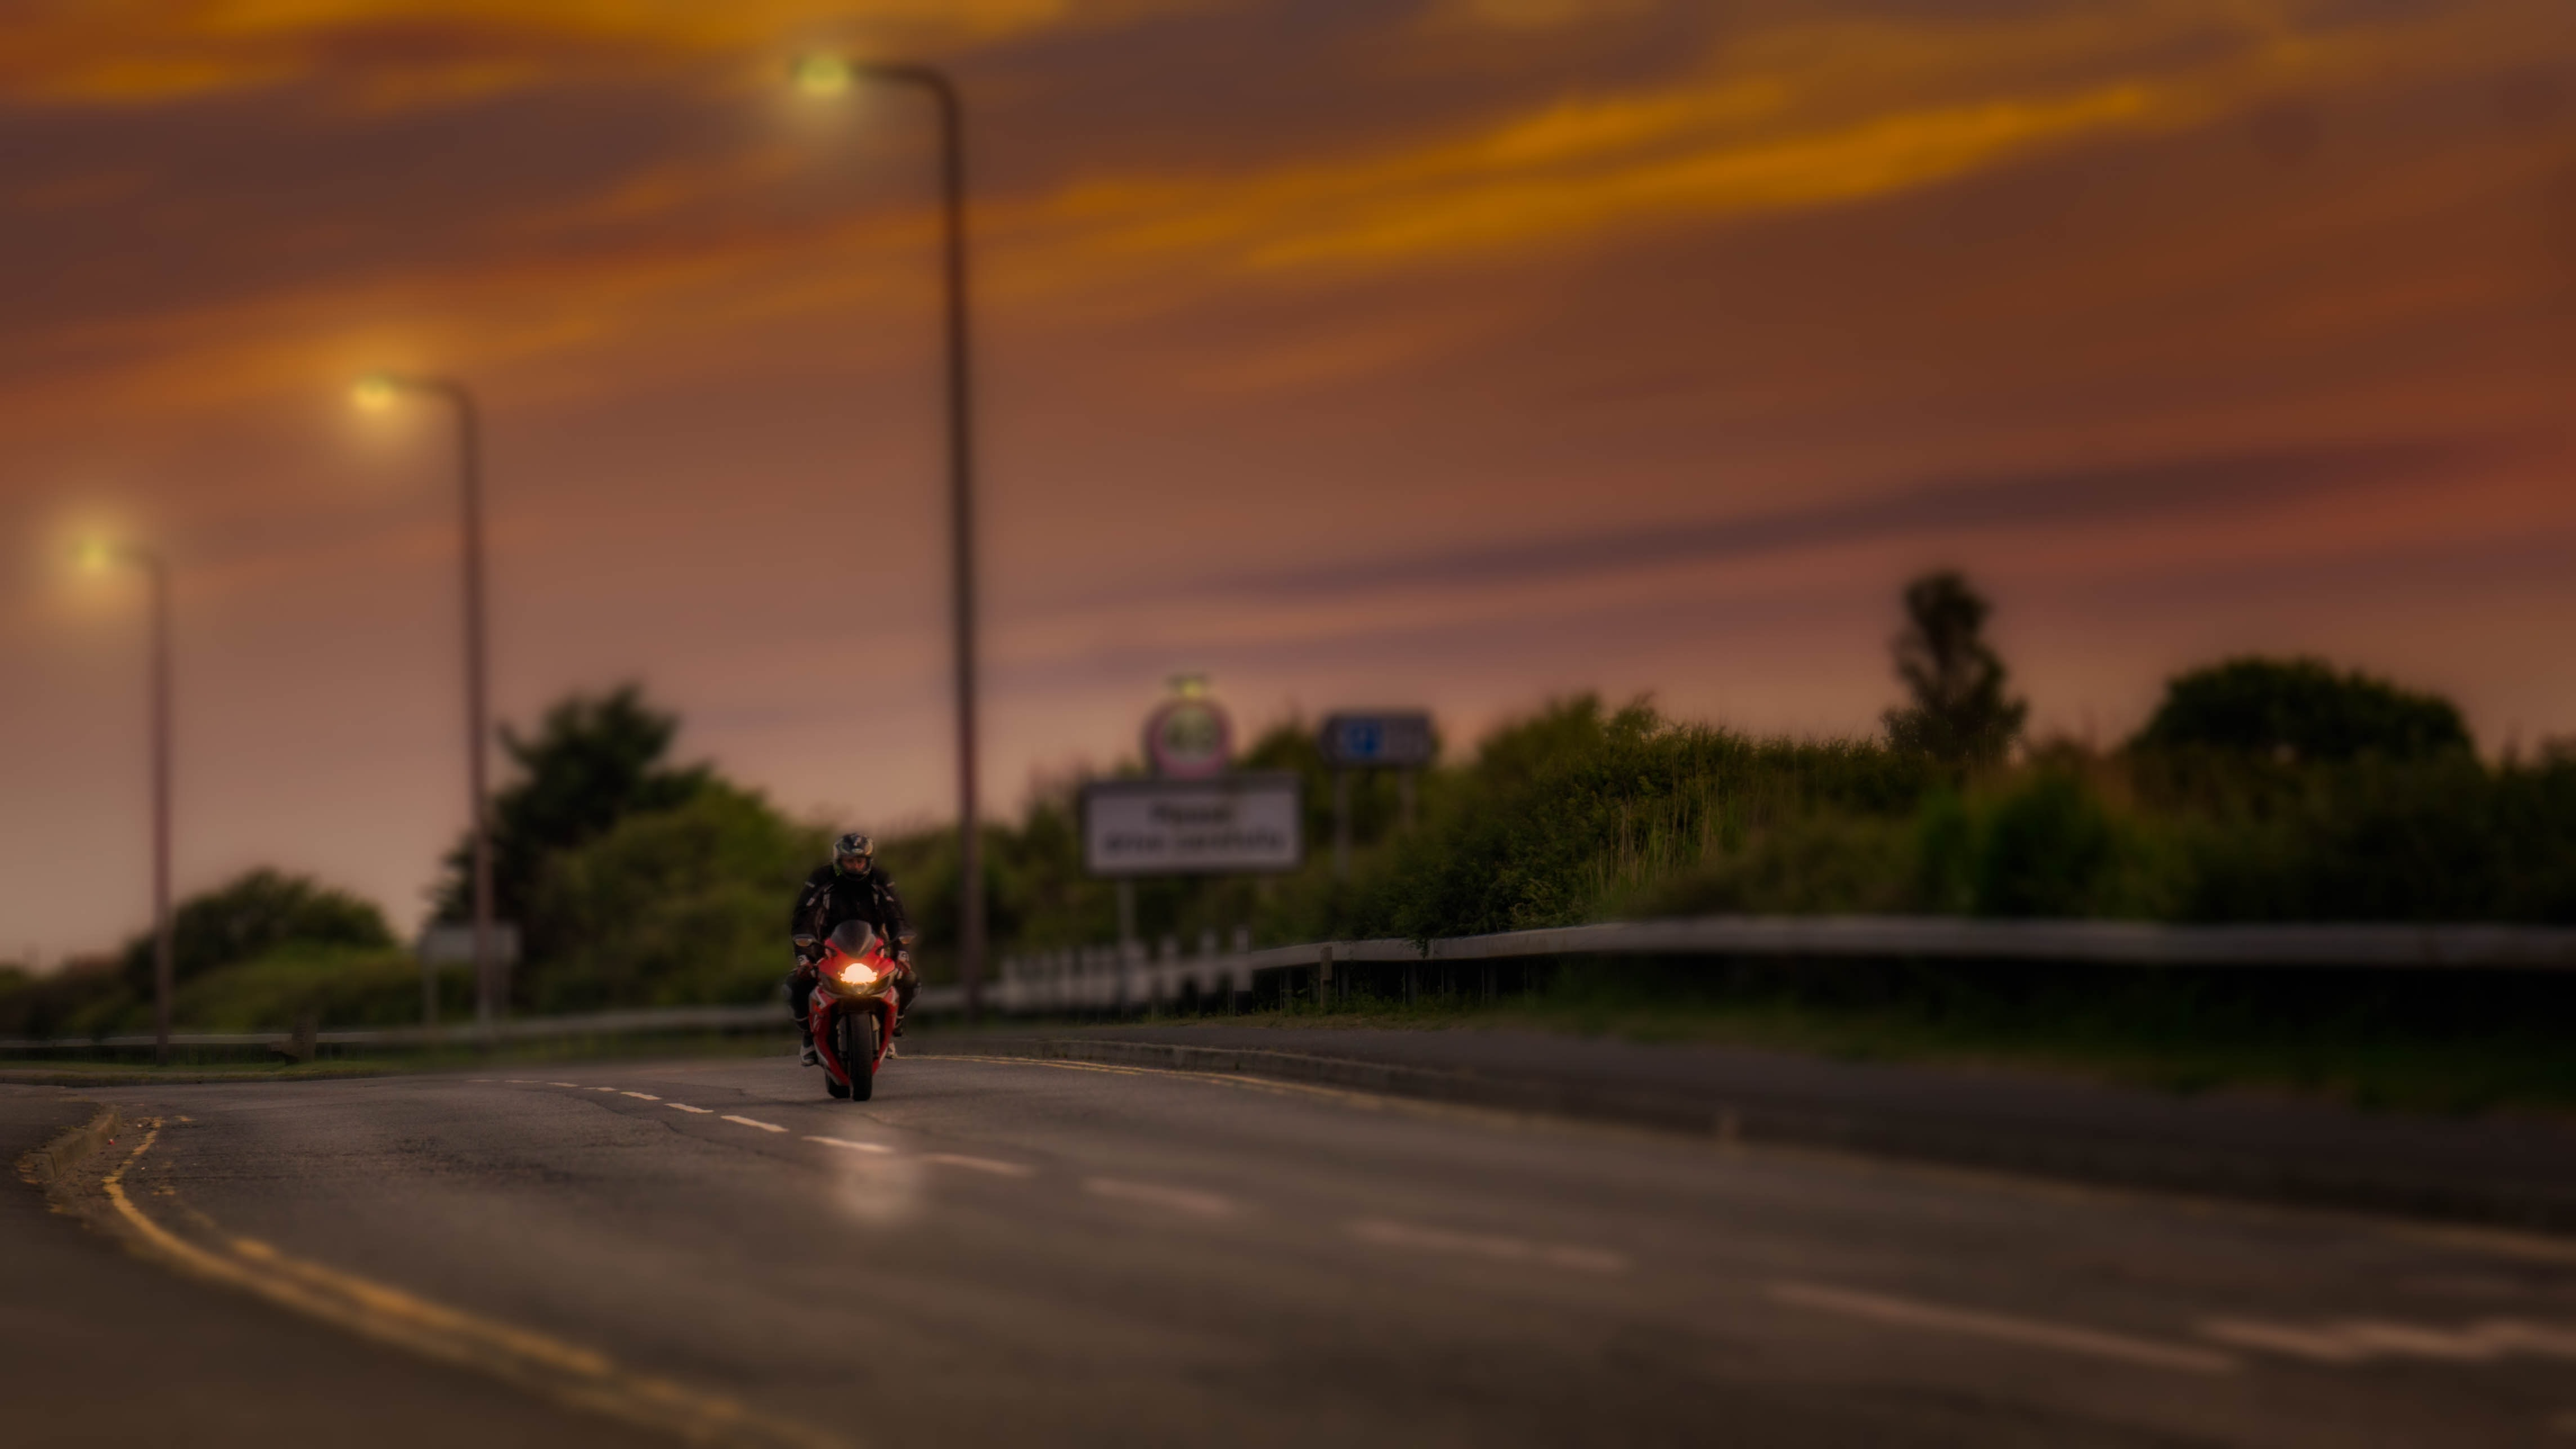 red motorcycle on road